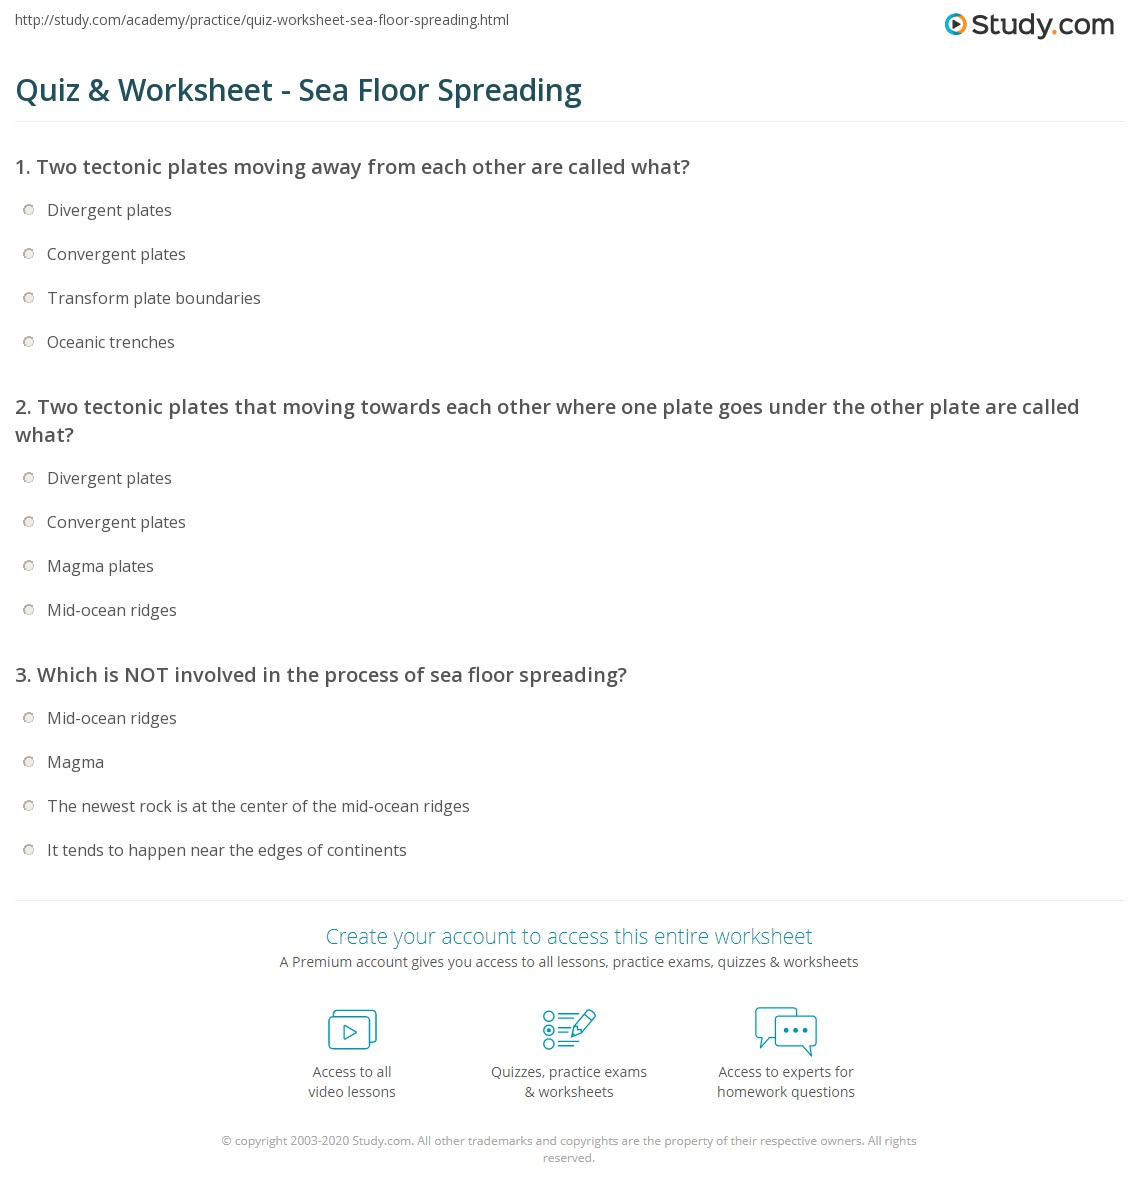 Sea Floor Spreading Worksheet Answers